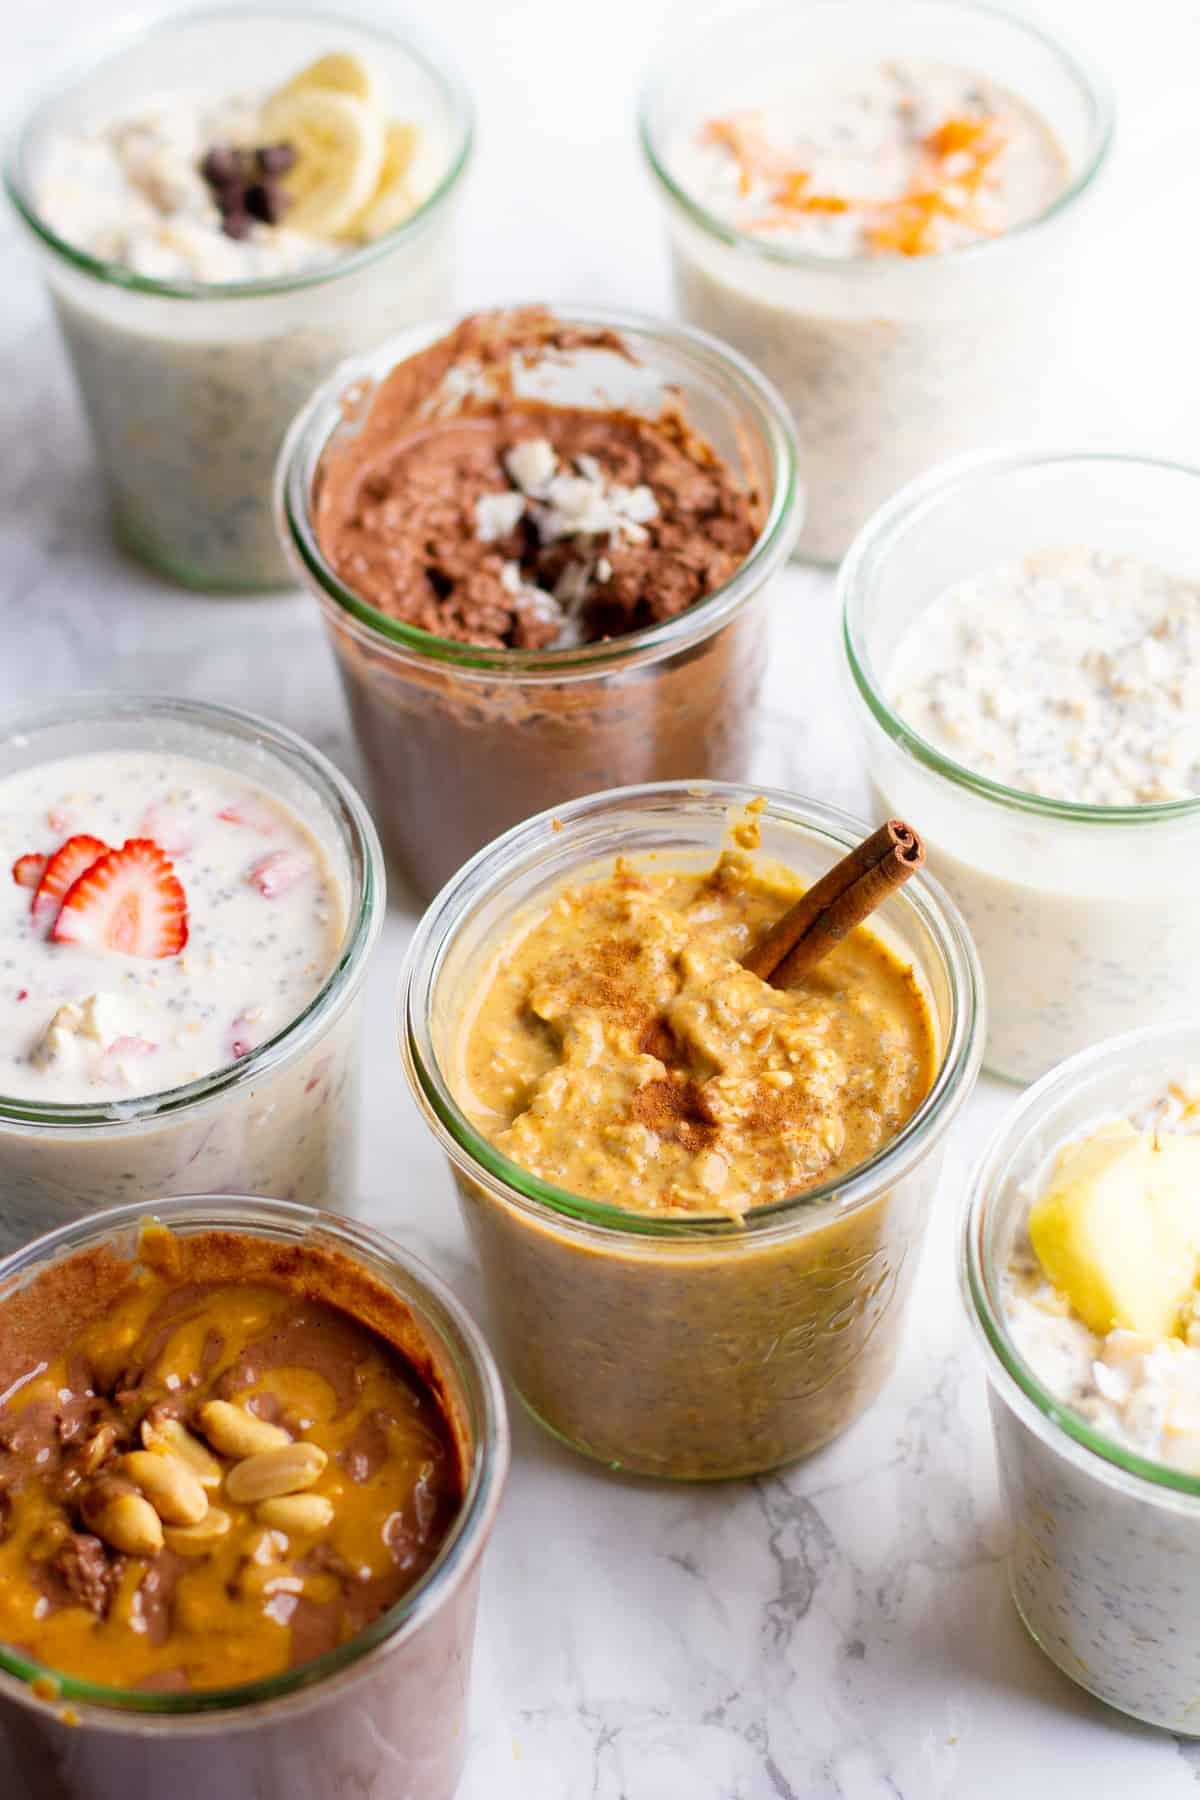 Eight different flavors of overnight oats, each in its own glass jar.